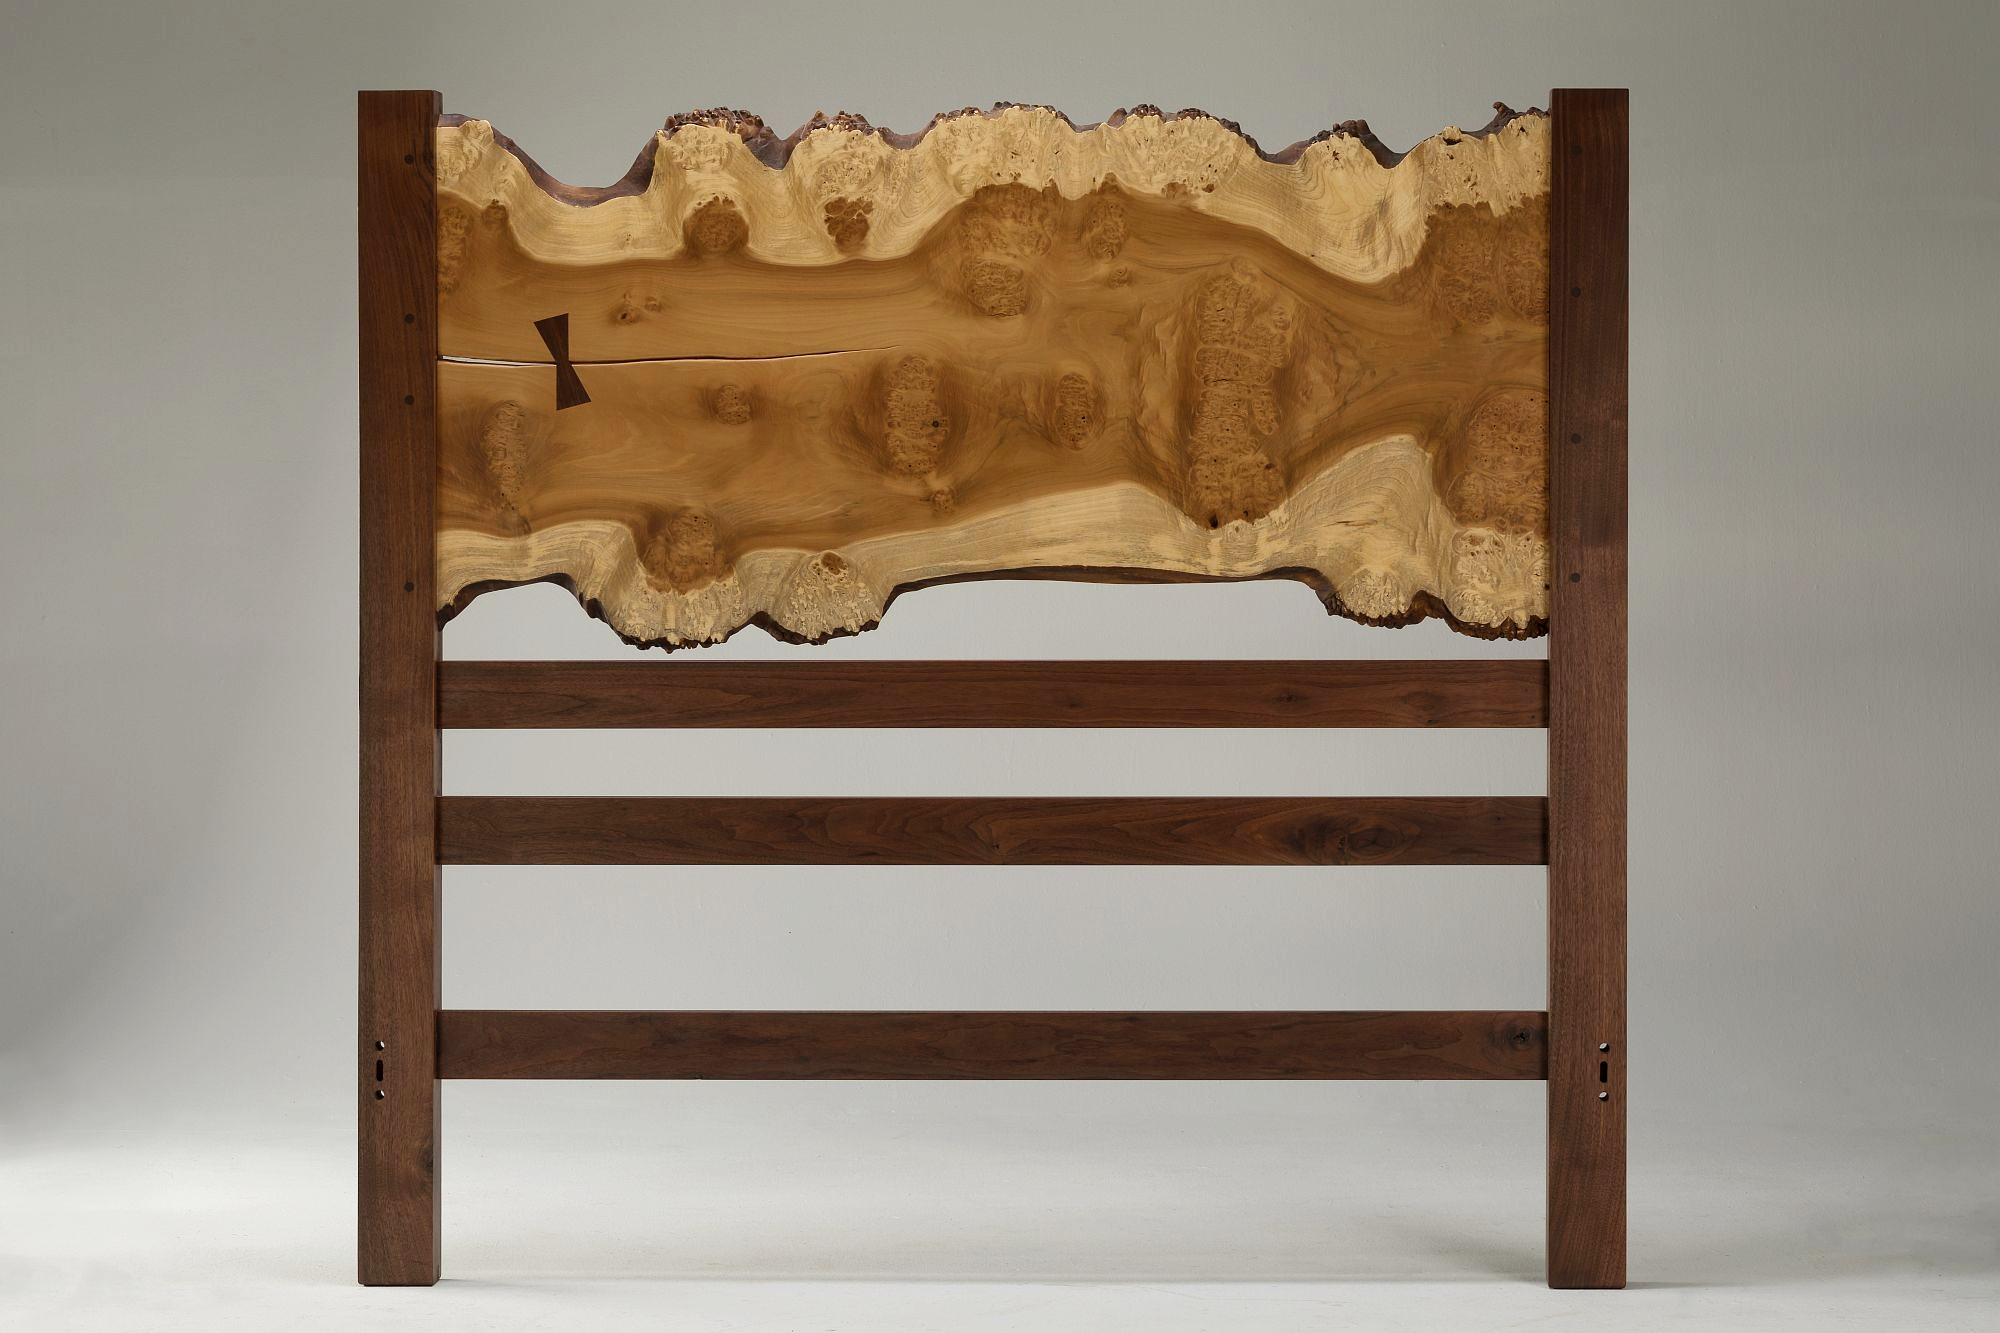 Beds, HEADBOARDS & wall hangings - for sale